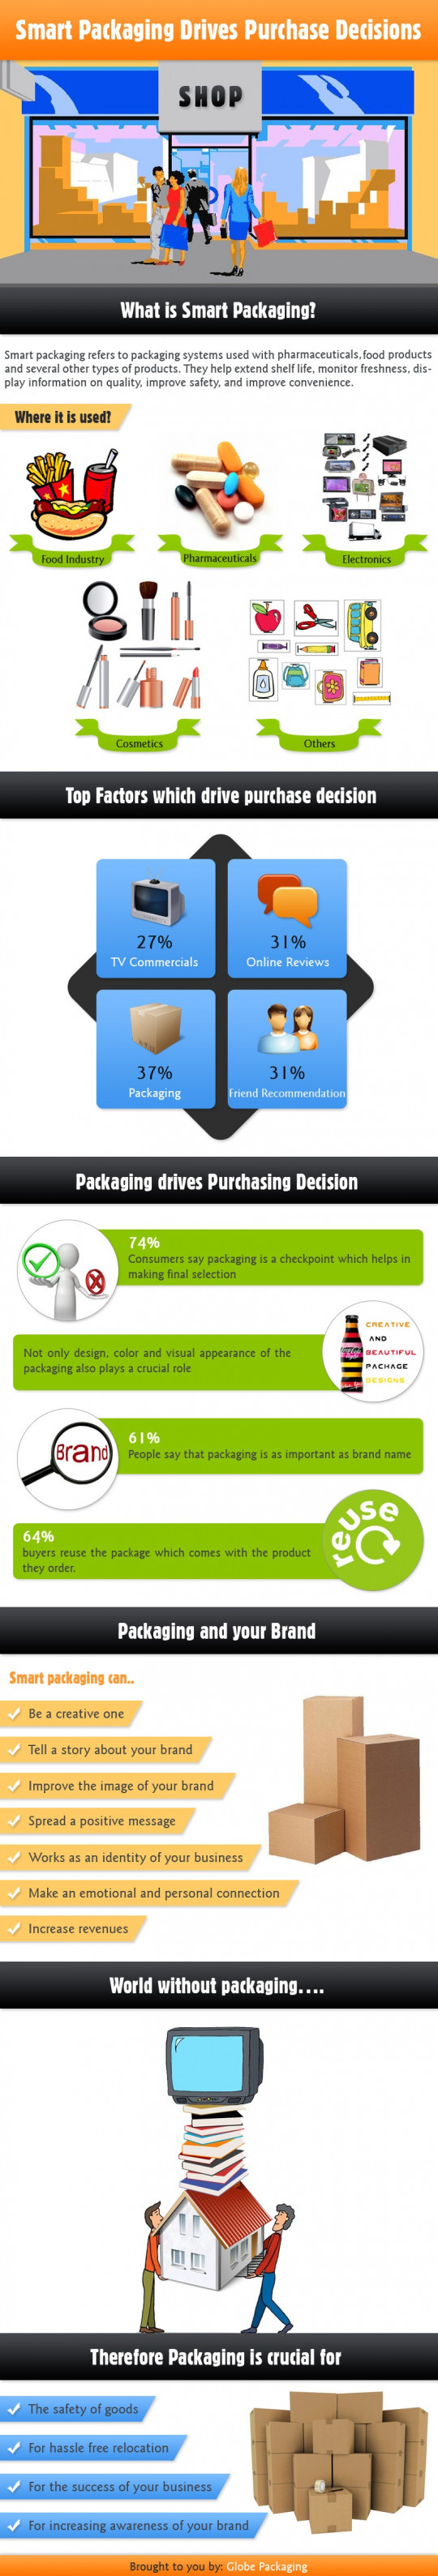 Smart Packaging Drives Purchase Decisions